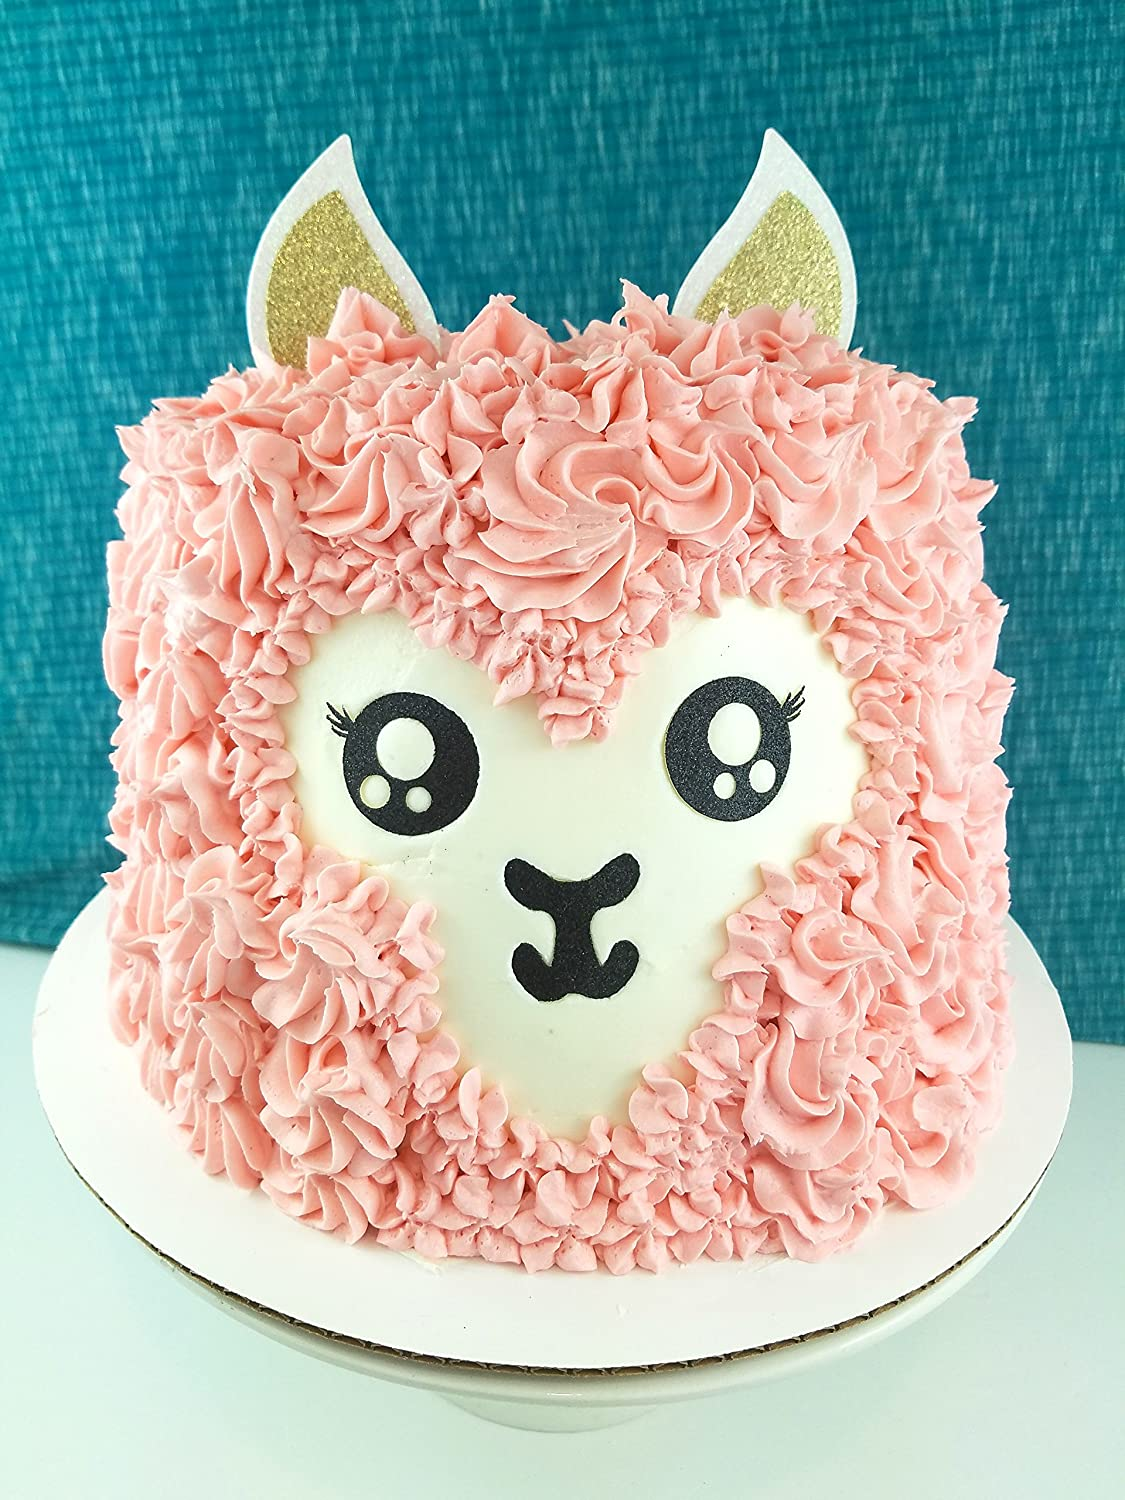 Marvelous Amazon Com Cms Design Studio Handmade Llama Birthday Cake Topper Personalised Birthday Cards Cominlily Jamesorg